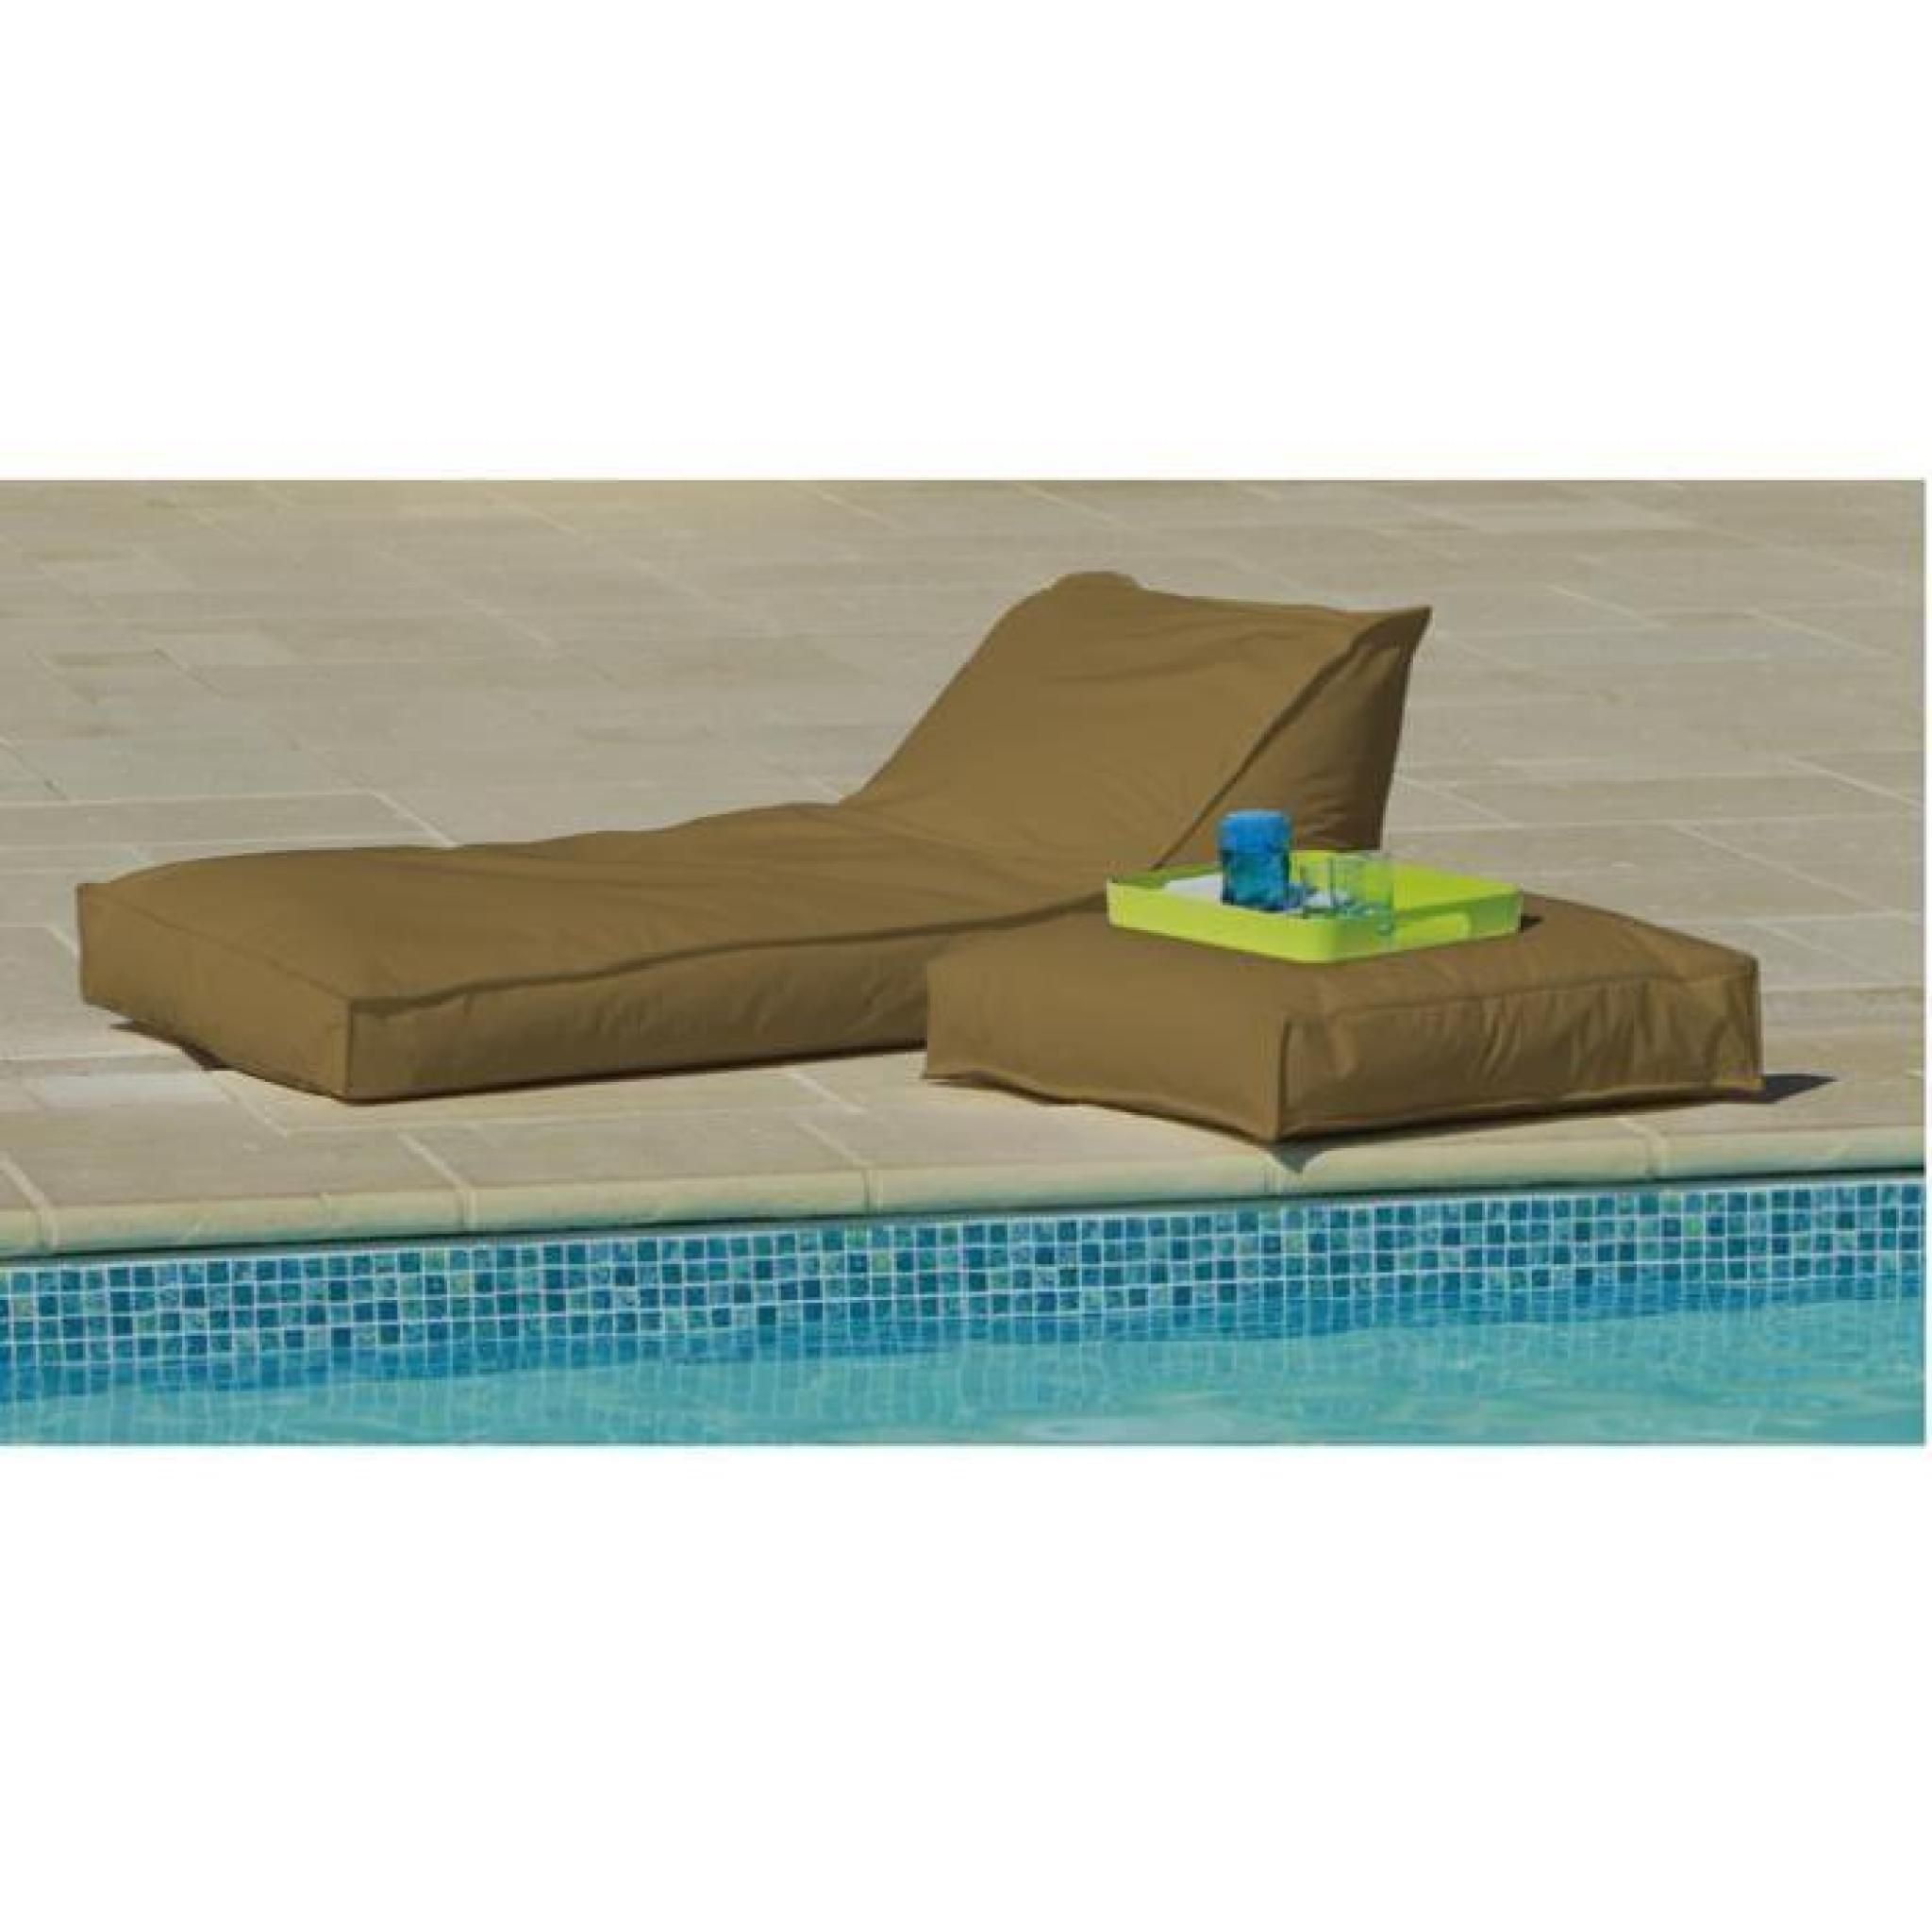 matelas bain de soleil camel camel achat vente transat de jardin pas cher. Black Bedroom Furniture Sets. Home Design Ideas